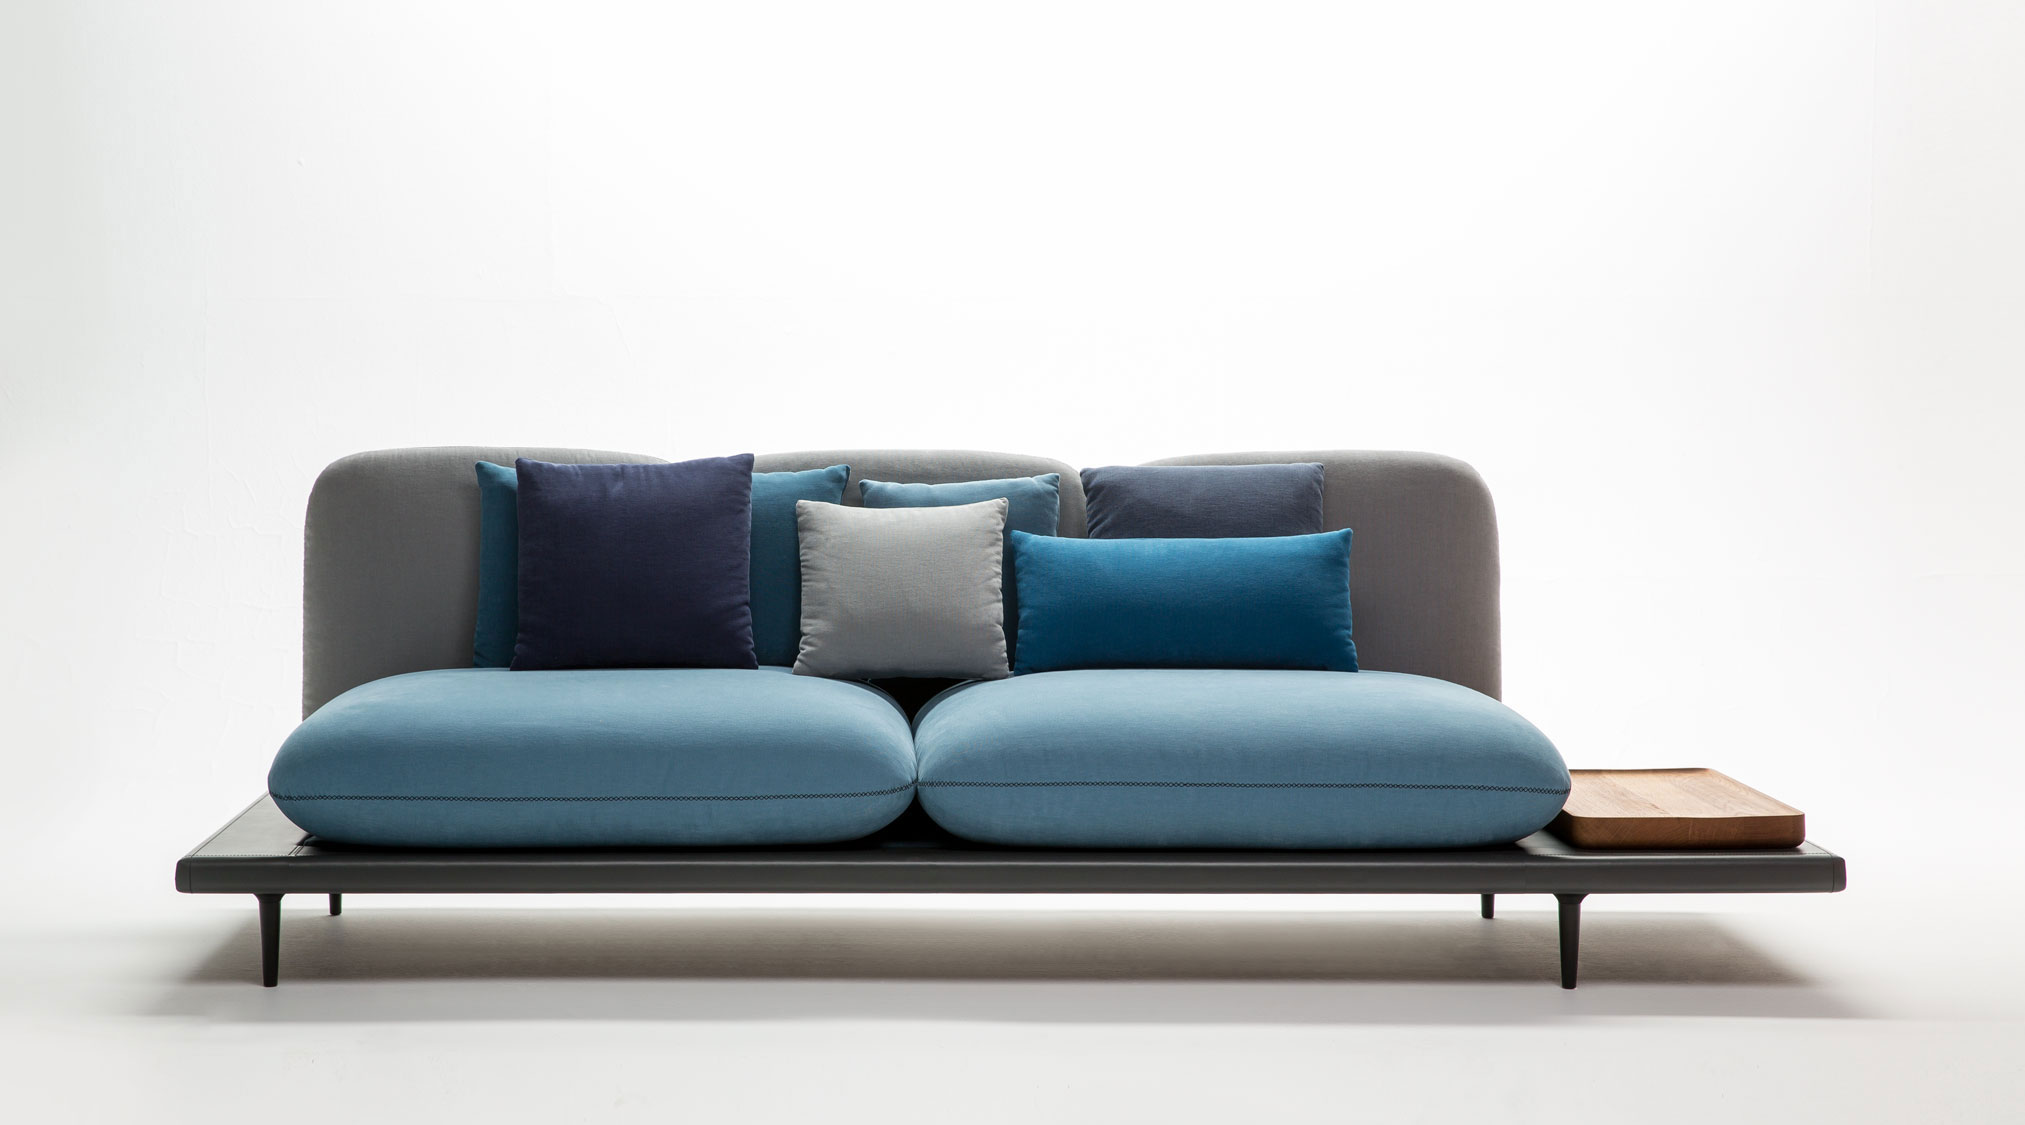 sofa4manhattan 2015